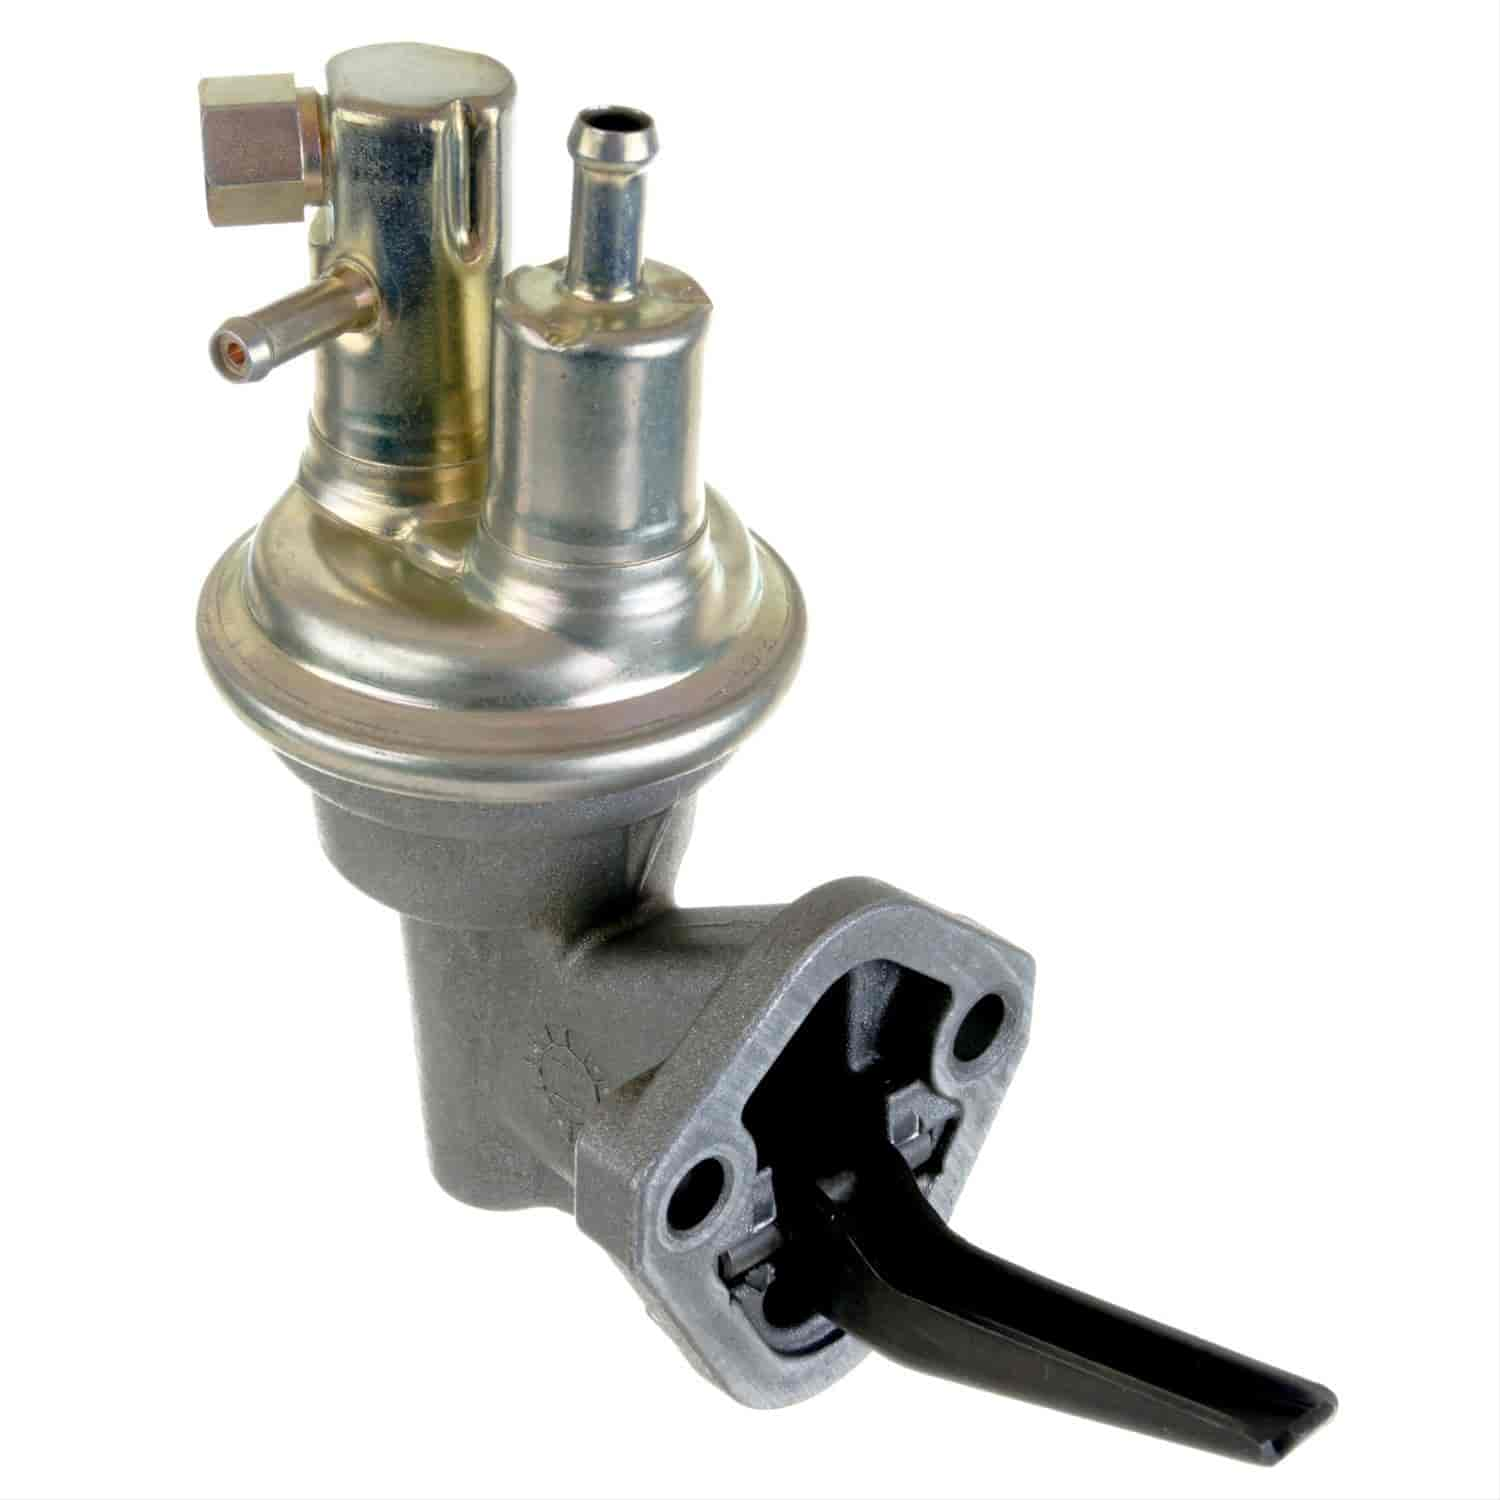 Delphi MF0093 - Delphi Mechanical Fuel Pumps